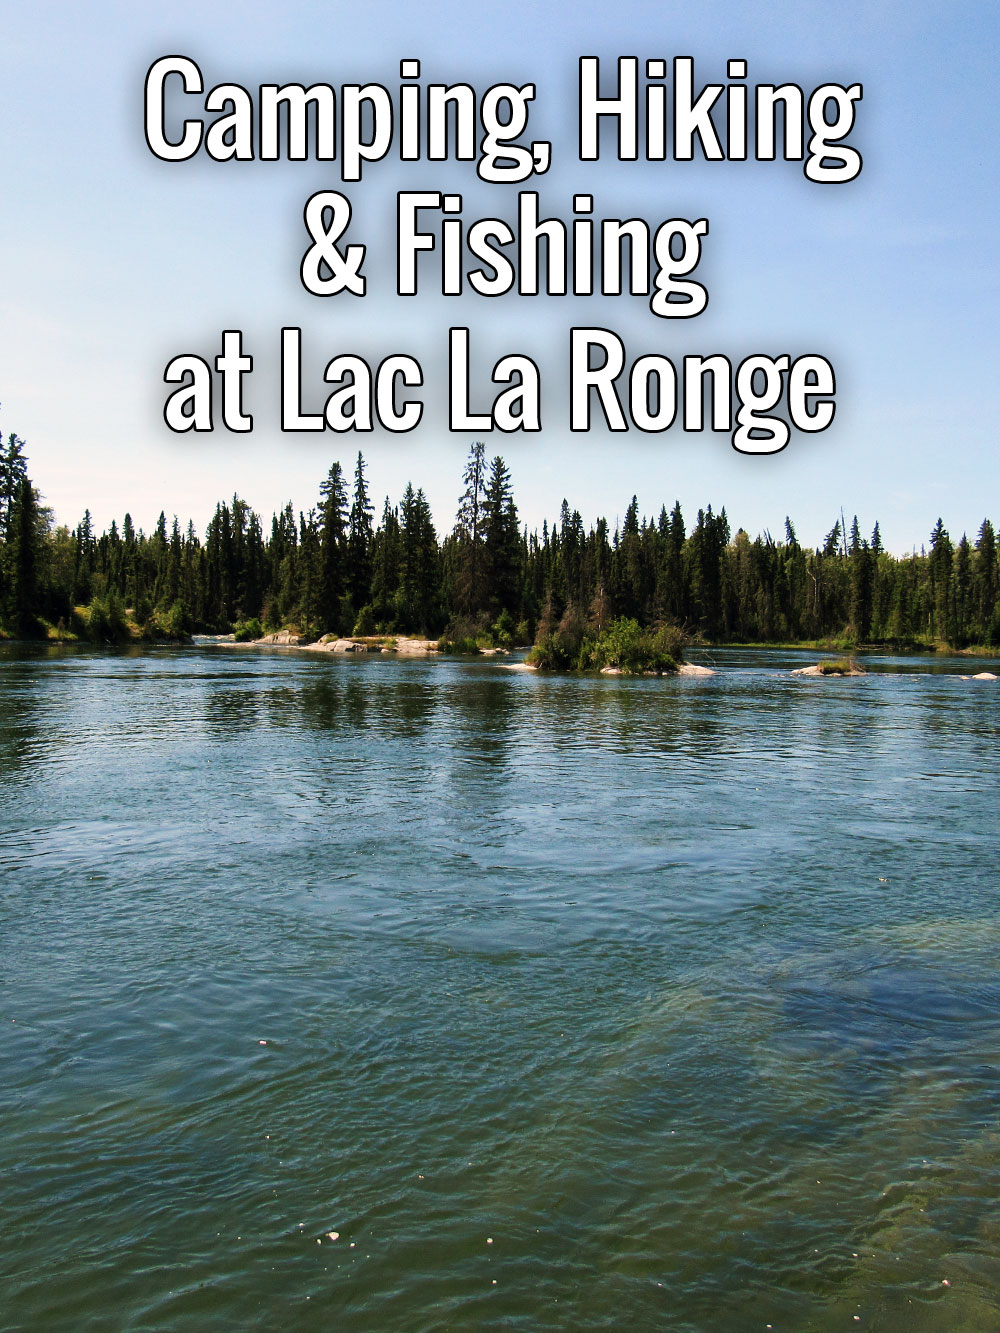 Camping, Hiking and Fishing at Lac La Ronge